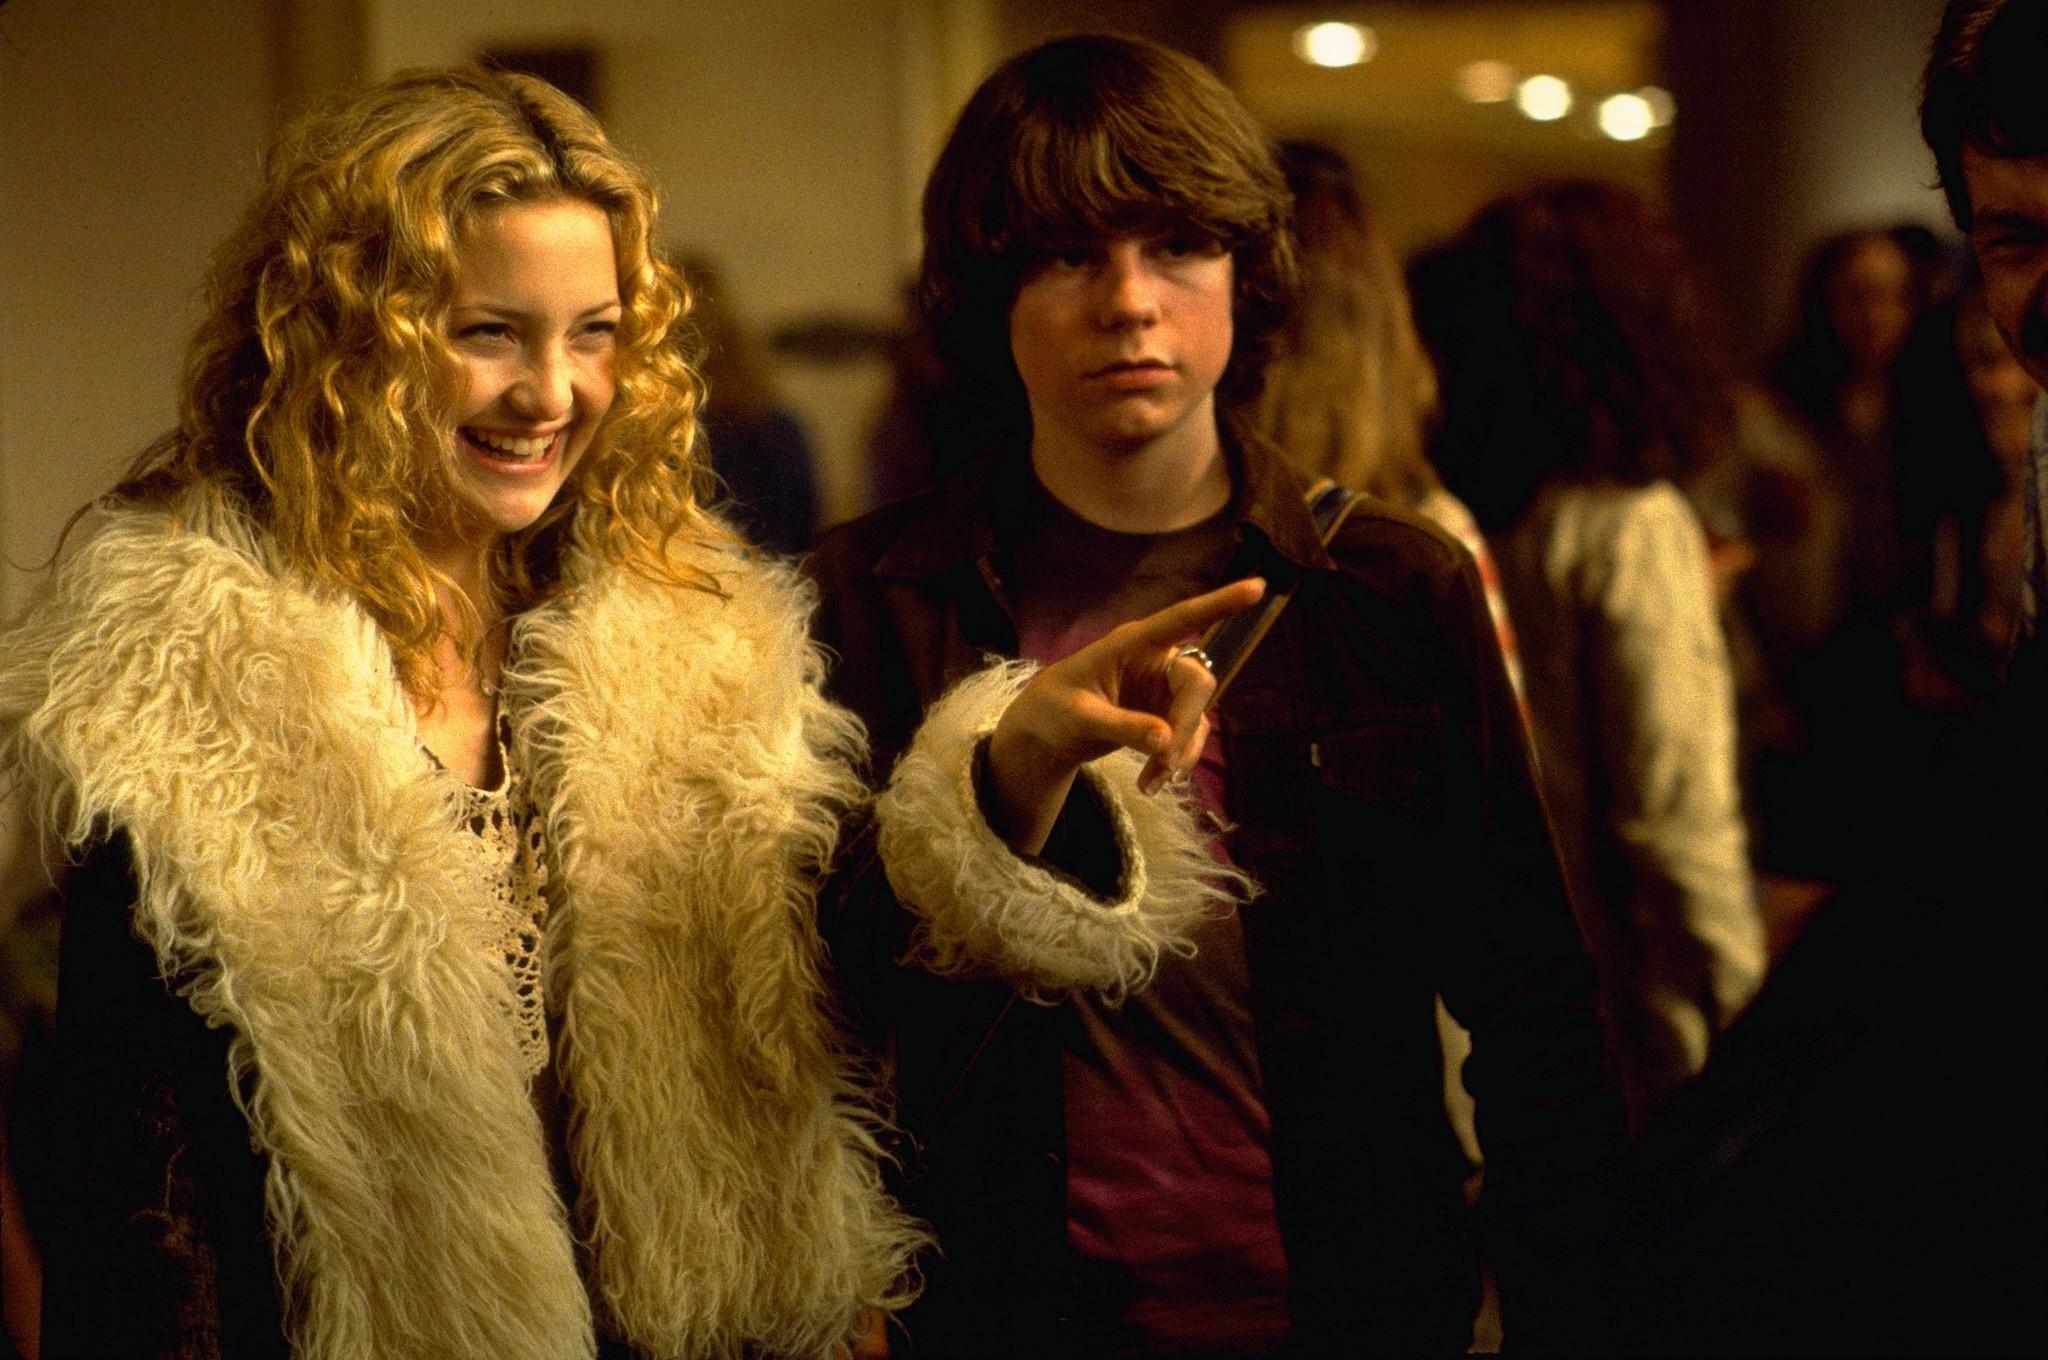 May 23, Almost Famous